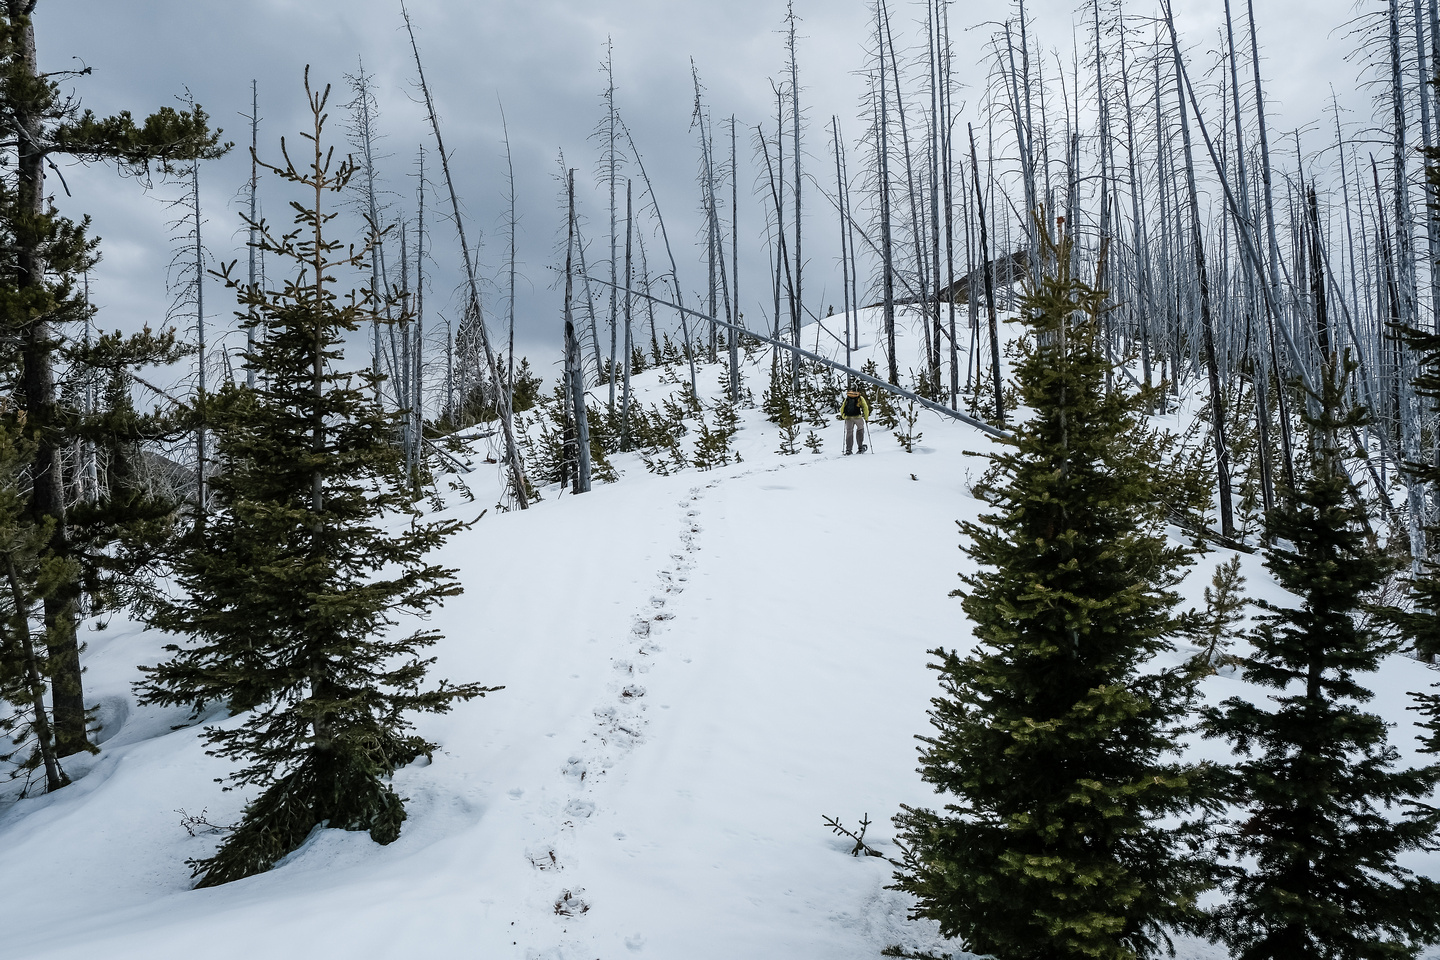 Following Wietse up snowy east slopes to the summit of Clubs Peak.